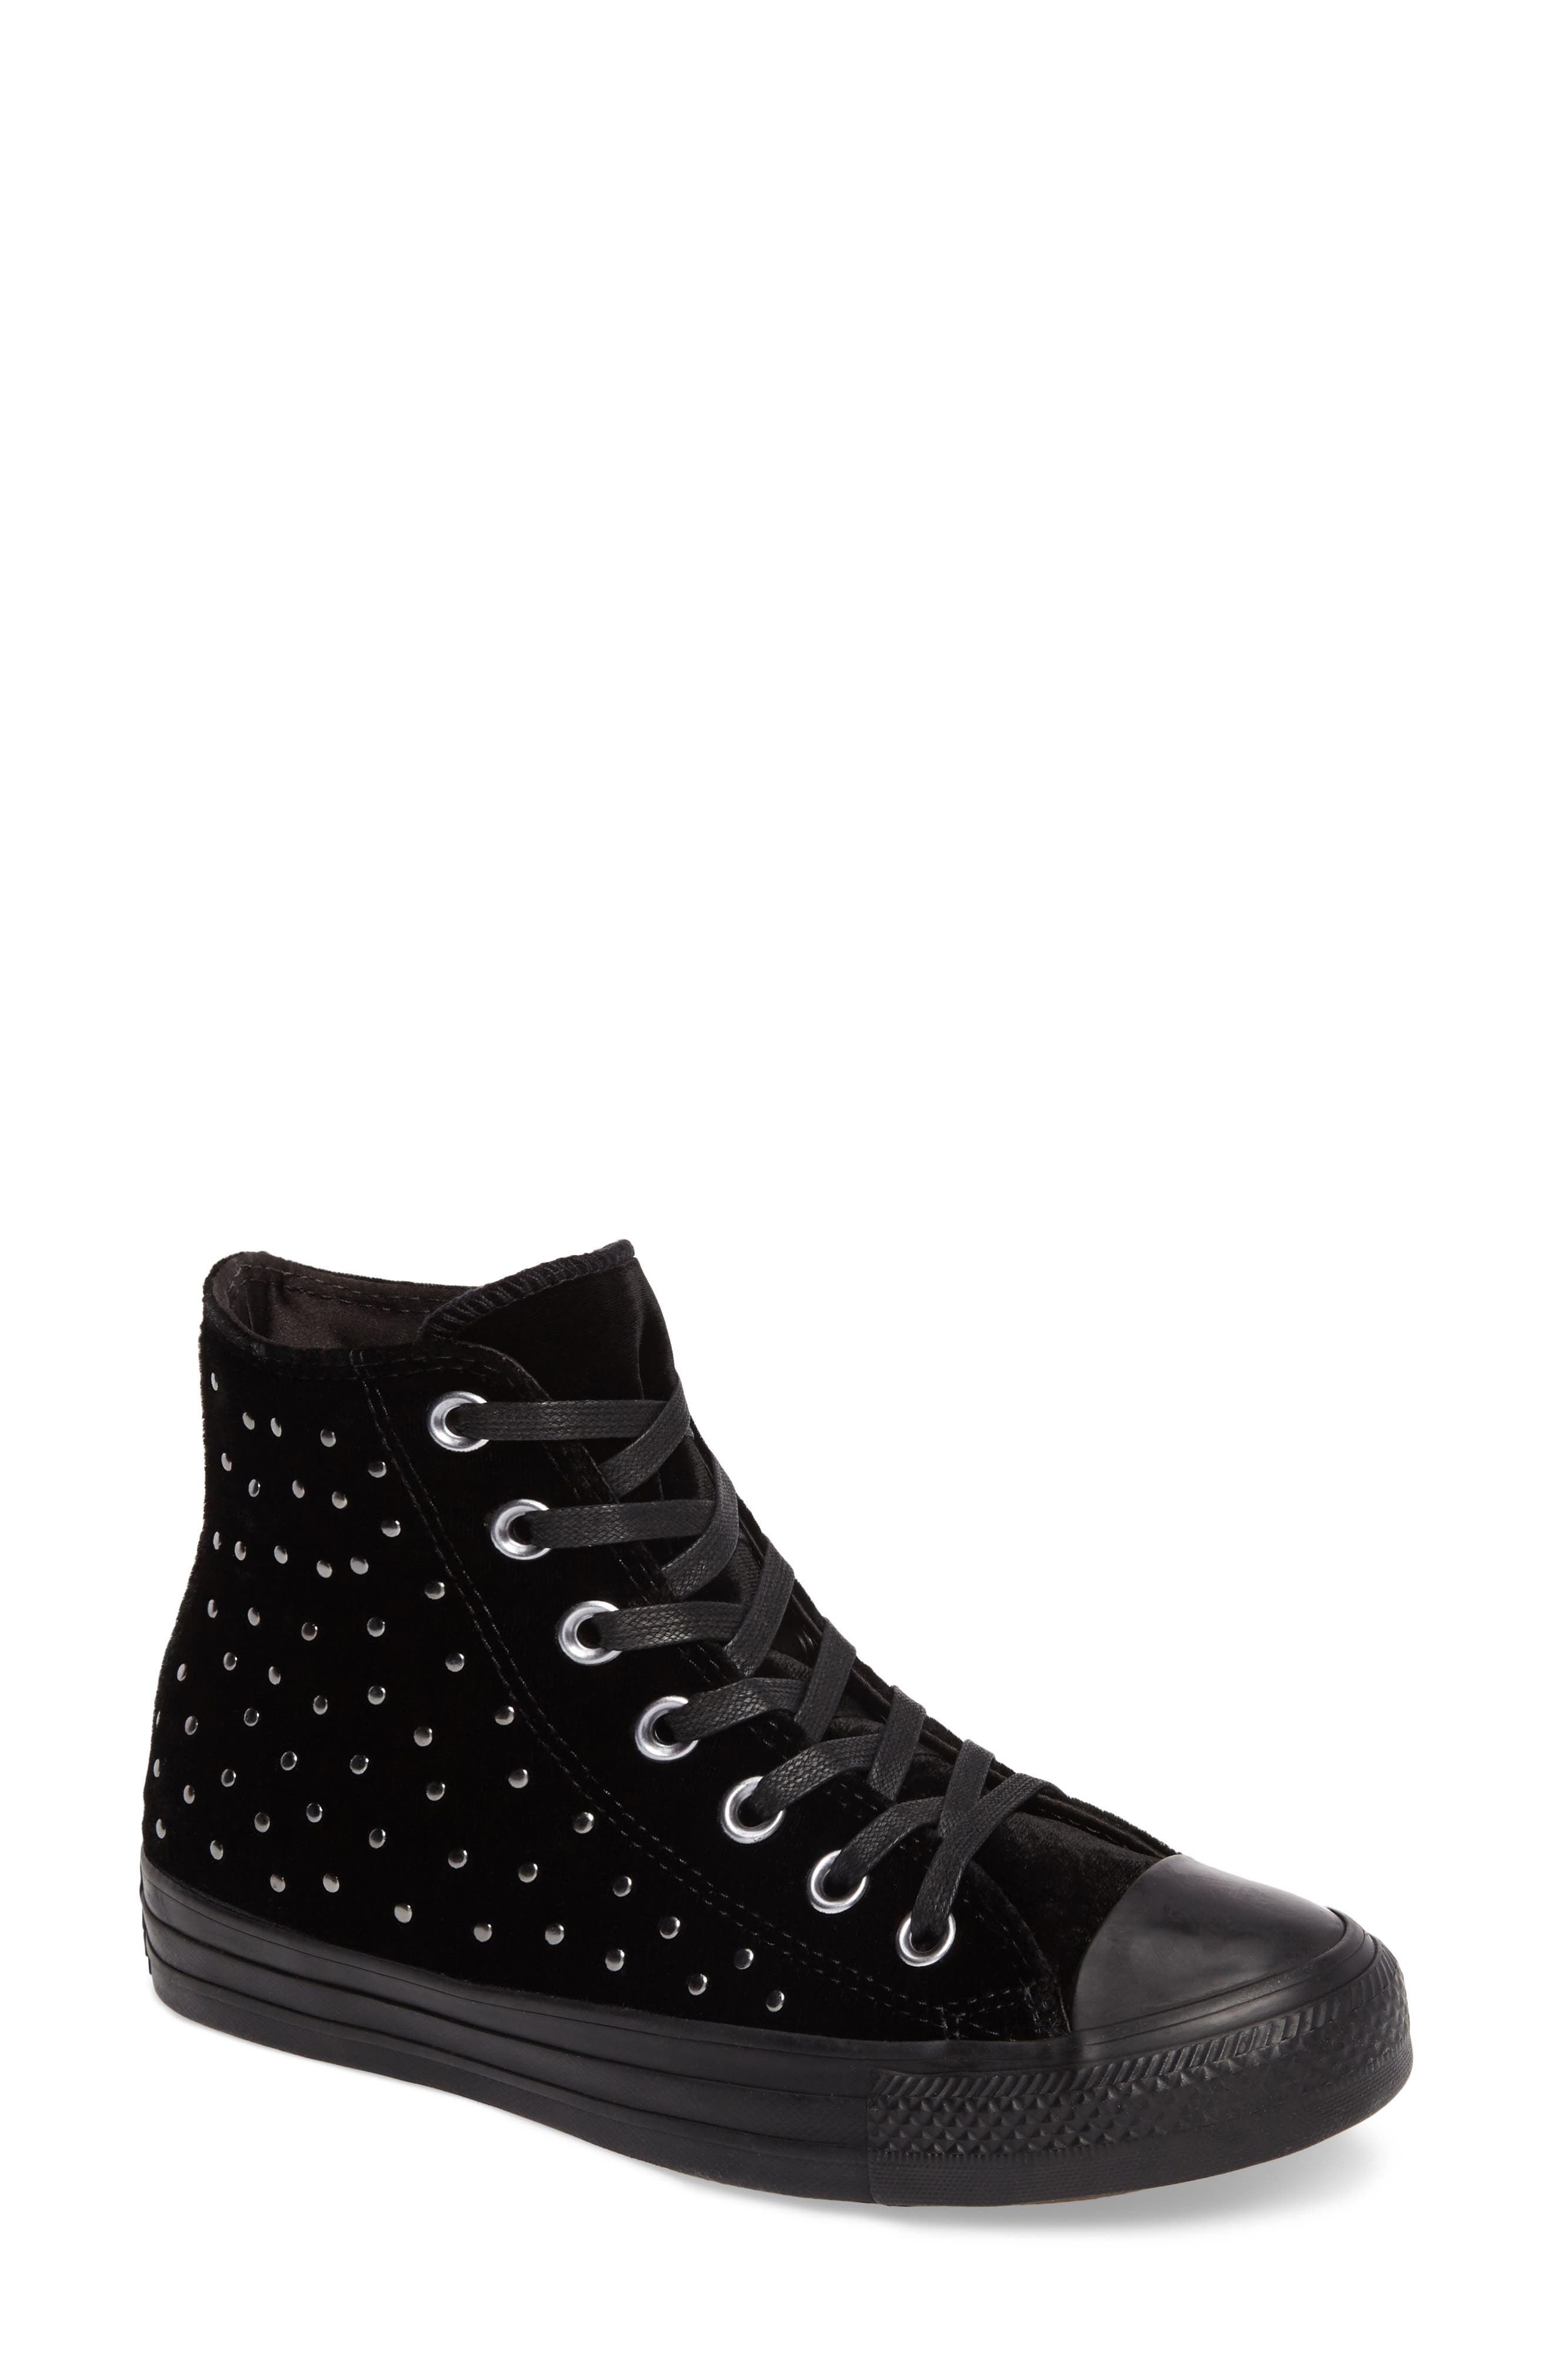 Alternate Image 1 Selected - Converse Chuck Taylor® All Star® Studded High Top Sneakers (Women)